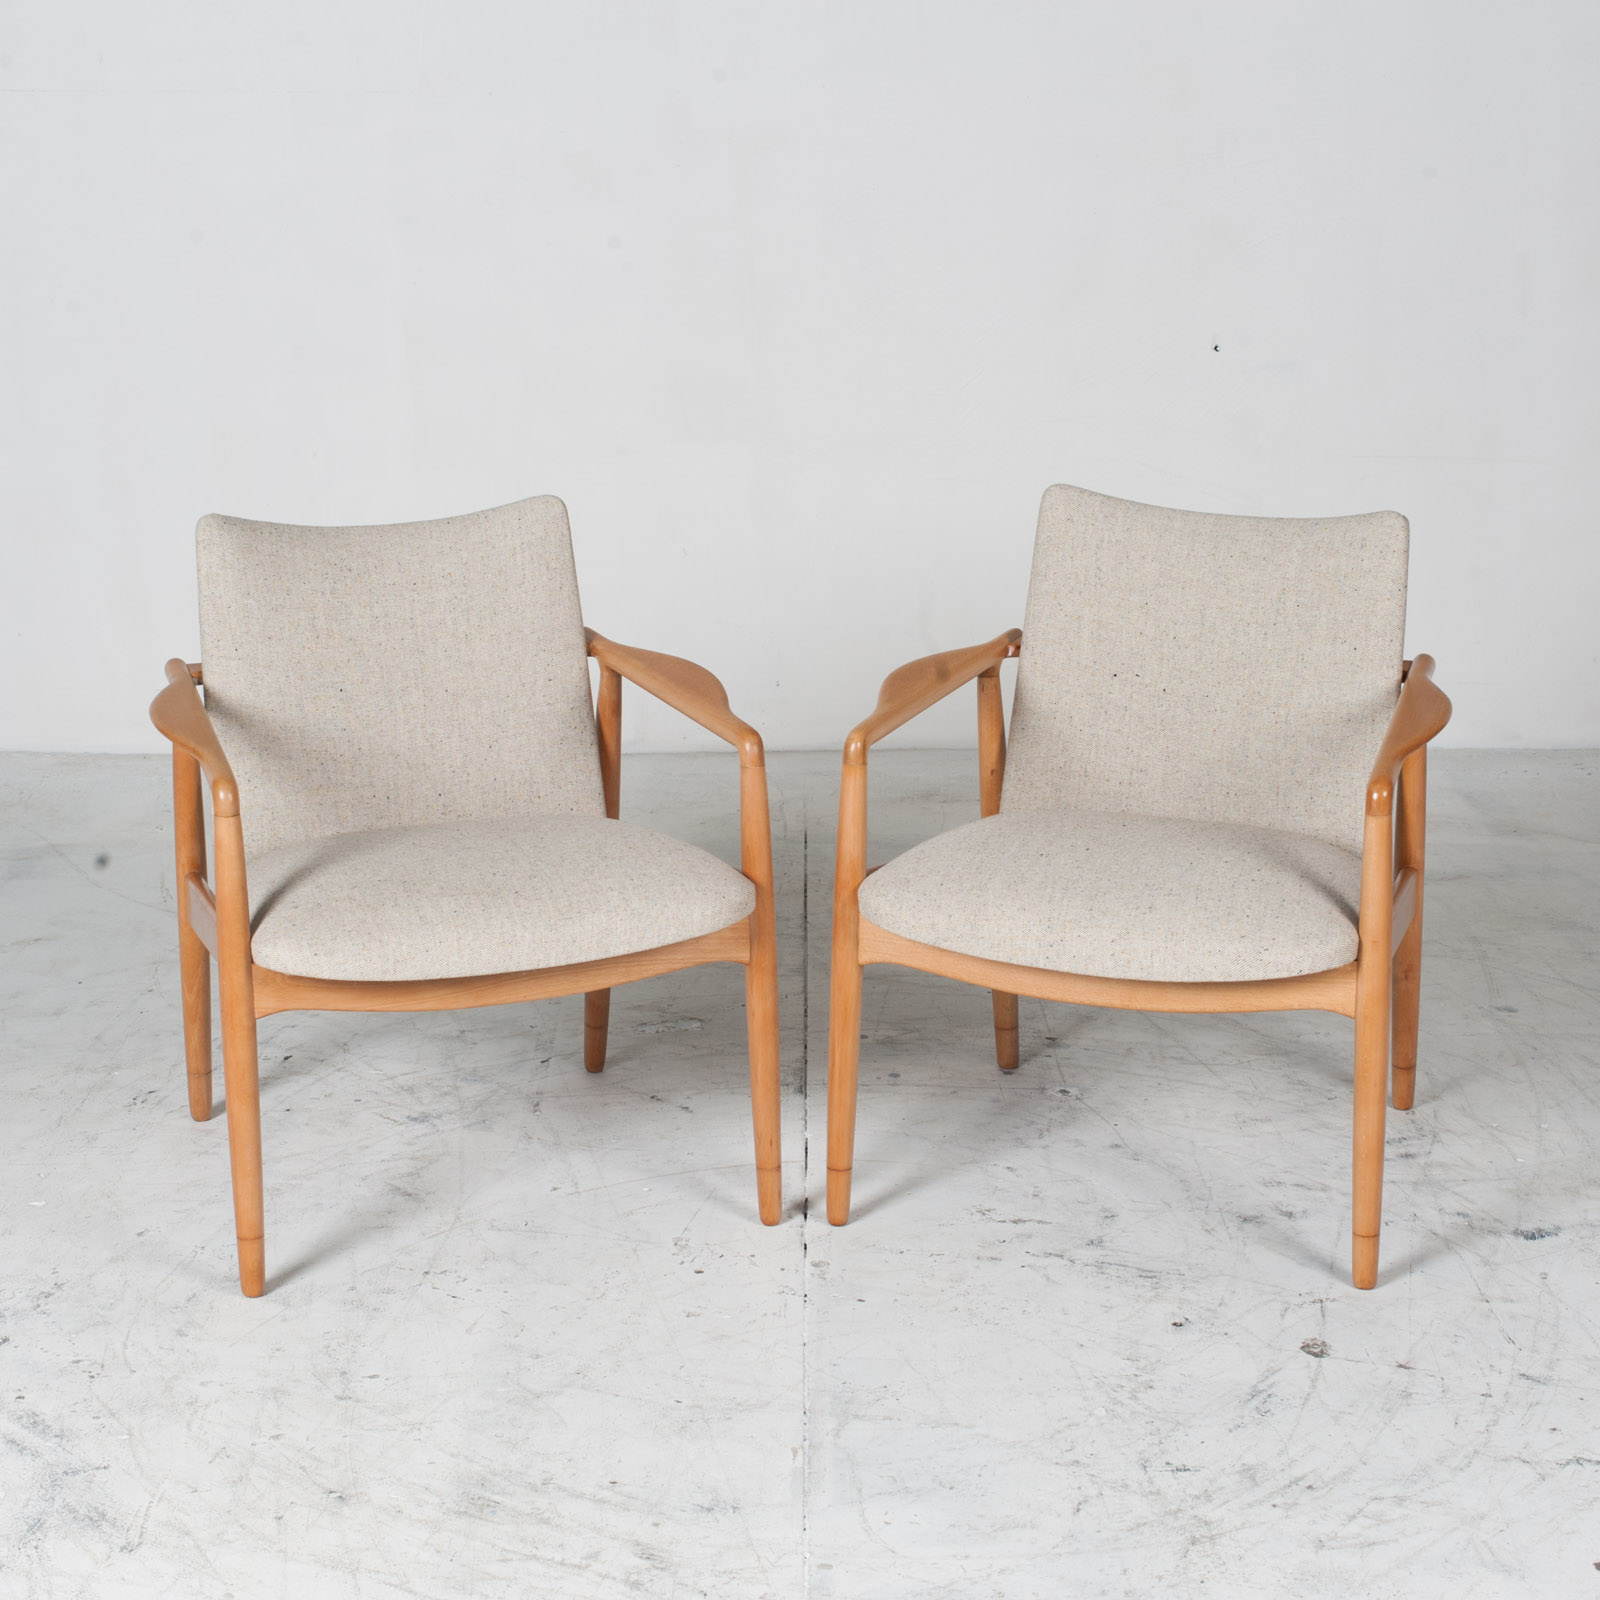 Armchairs In Beech Frame And Light Oatmeal Upholstery 1960s Denmark 011